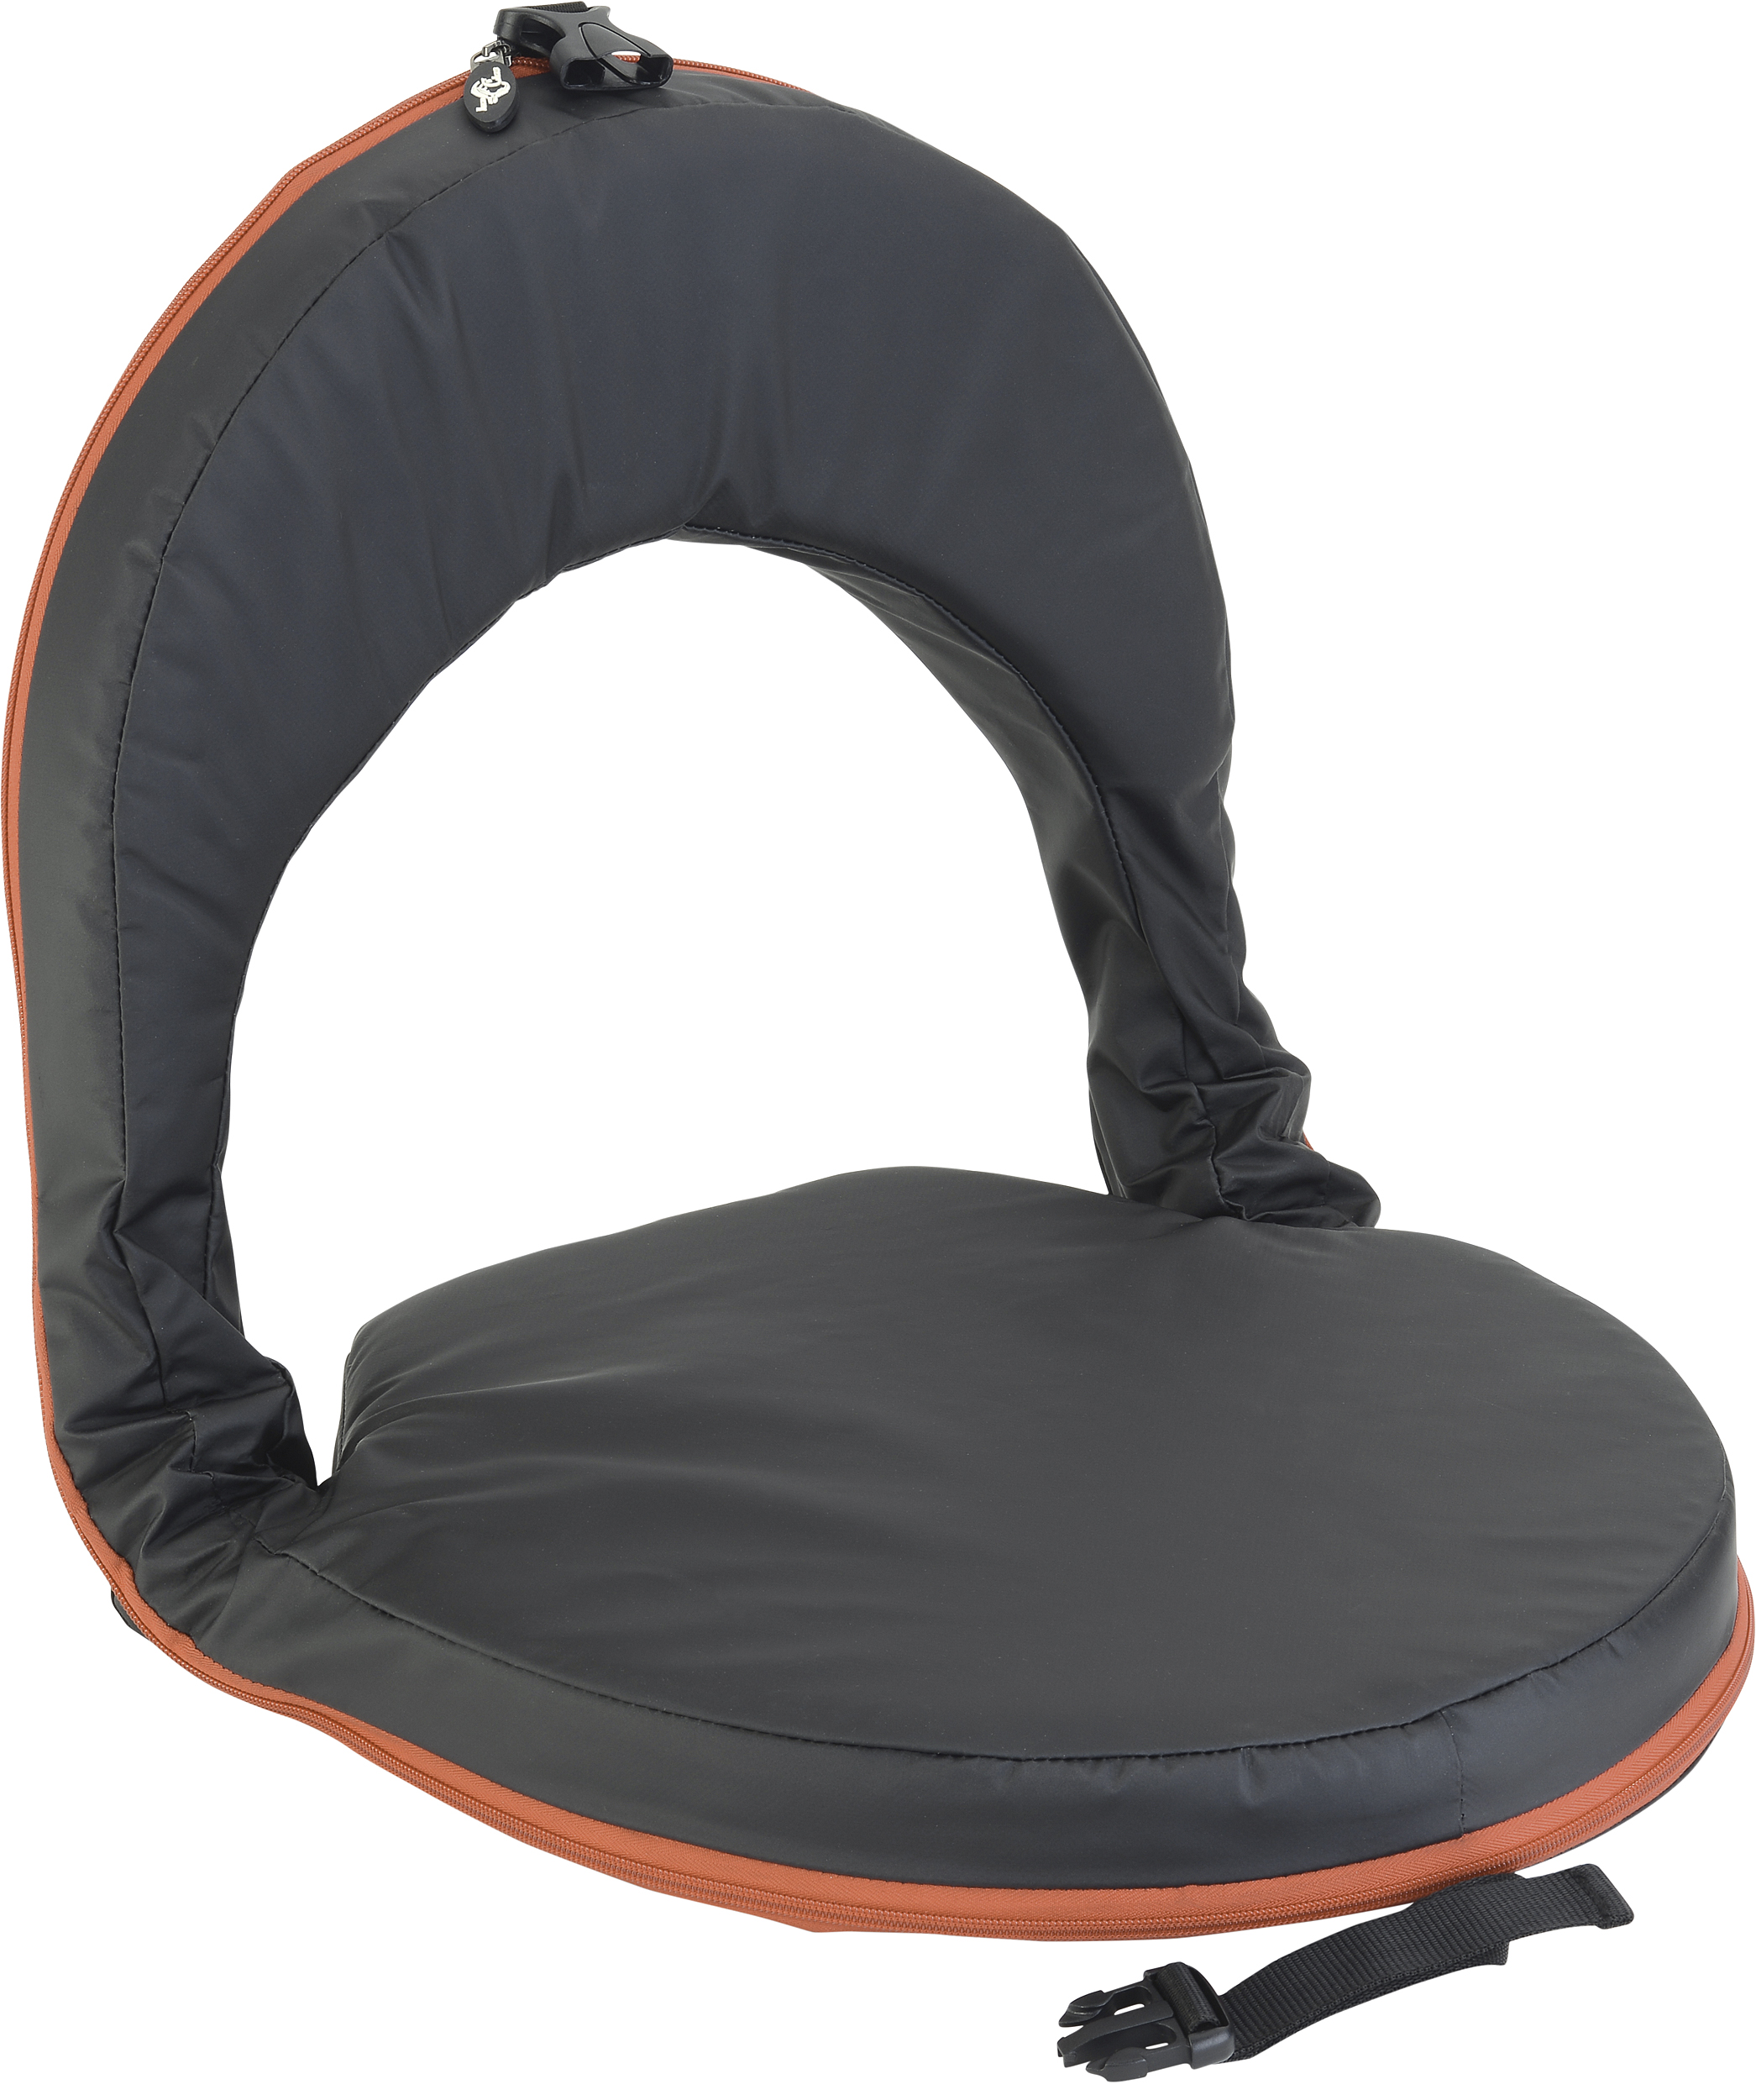 Iron Claw-Foldable Boat Seat-1 - Gerlinger.de